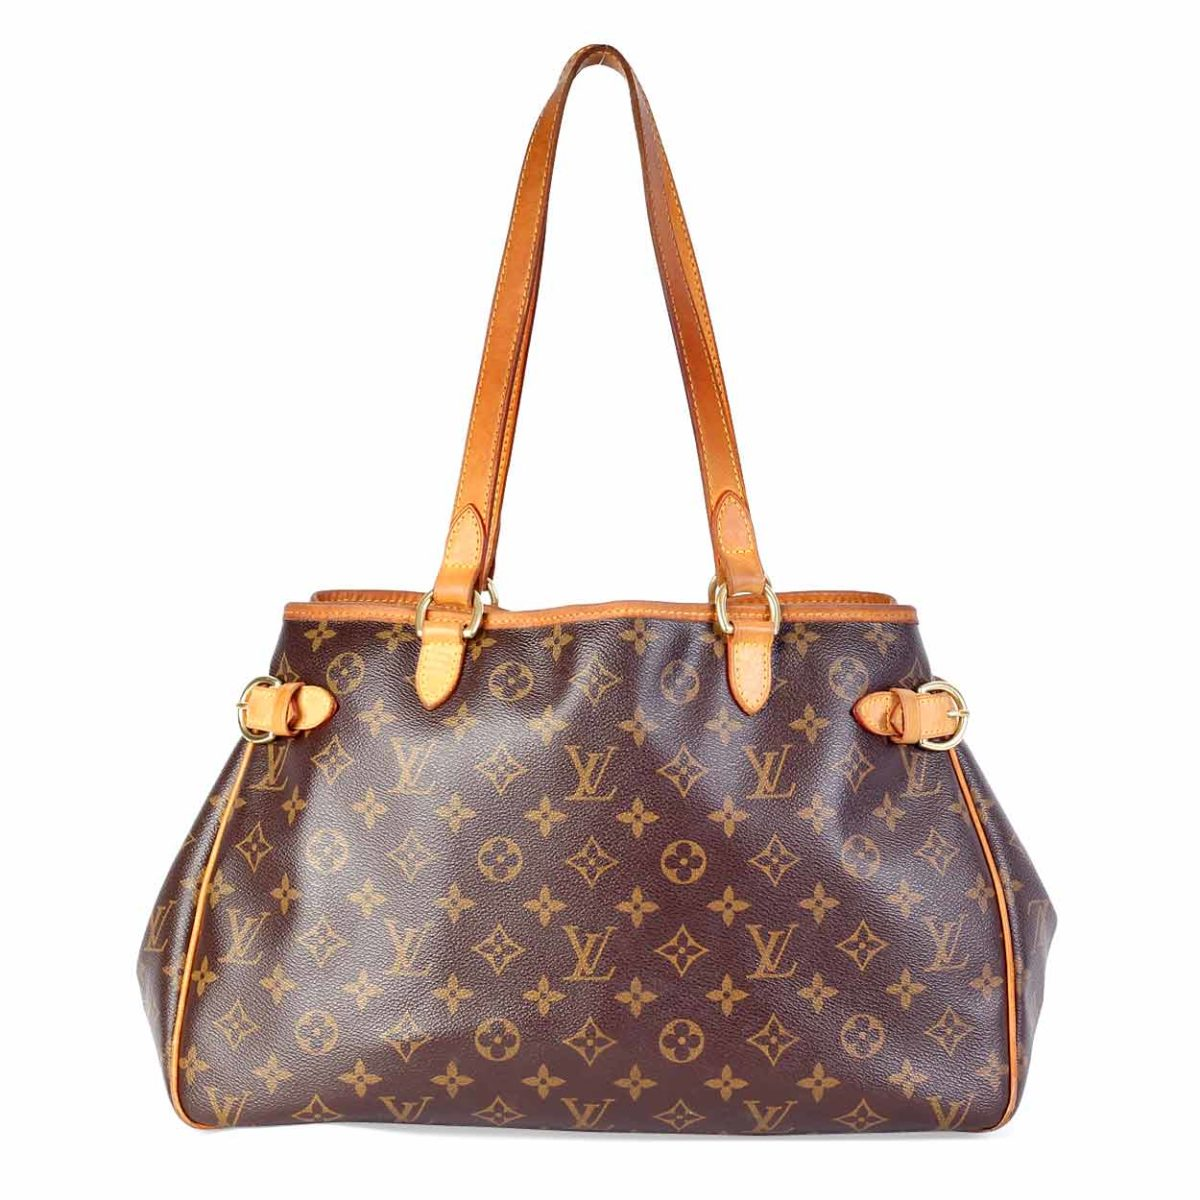 769c9bda71c8 LOUIS VUITTON Monogram Batignolles Horizontal   Luxity